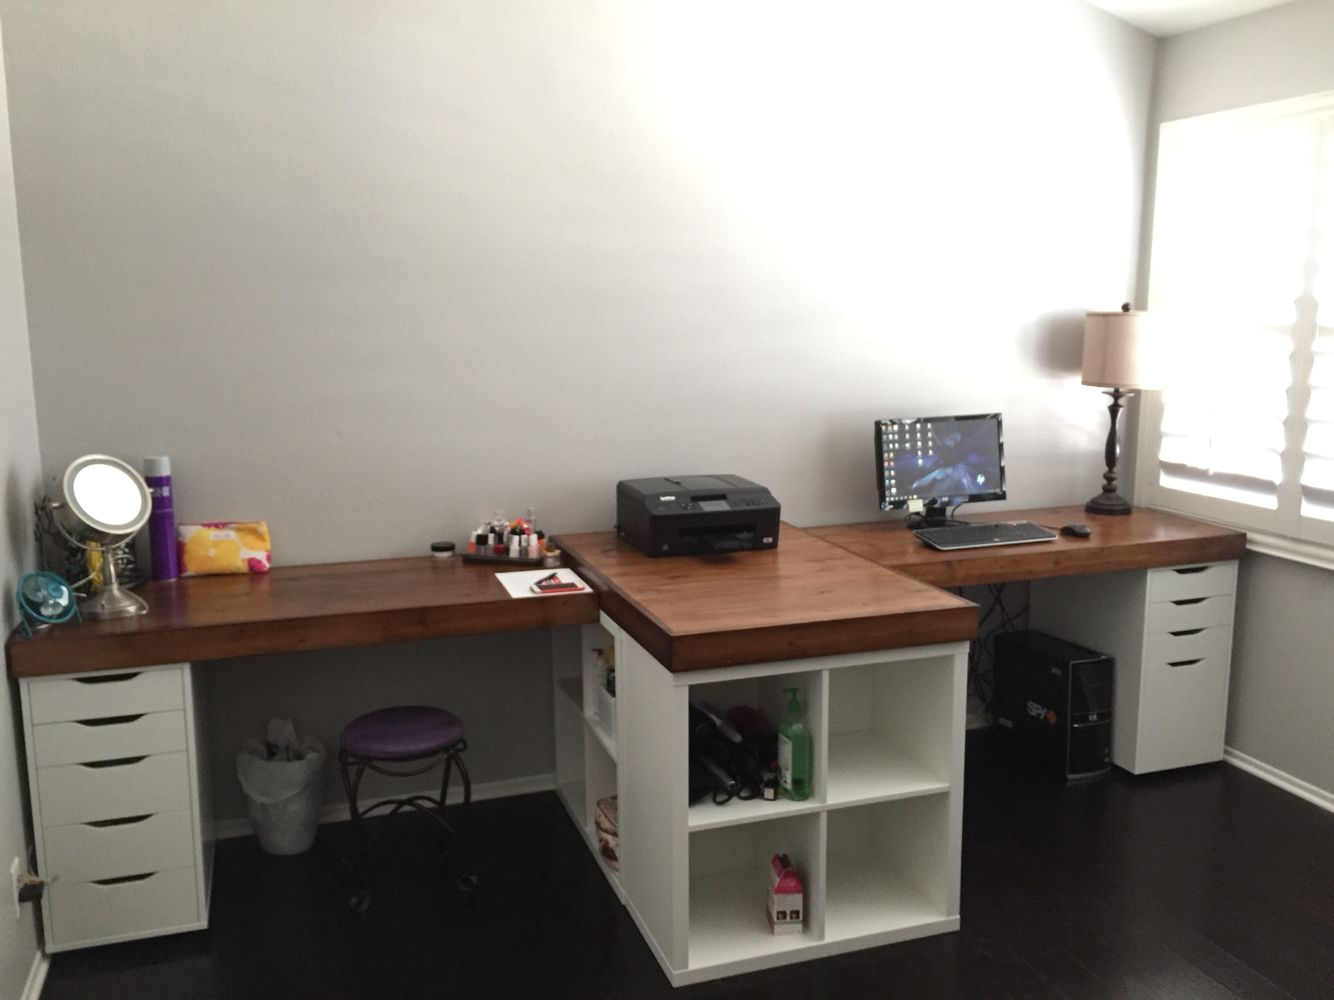 His And Hers Desk Ikea Hack Ikea Base Cabinets With Custom